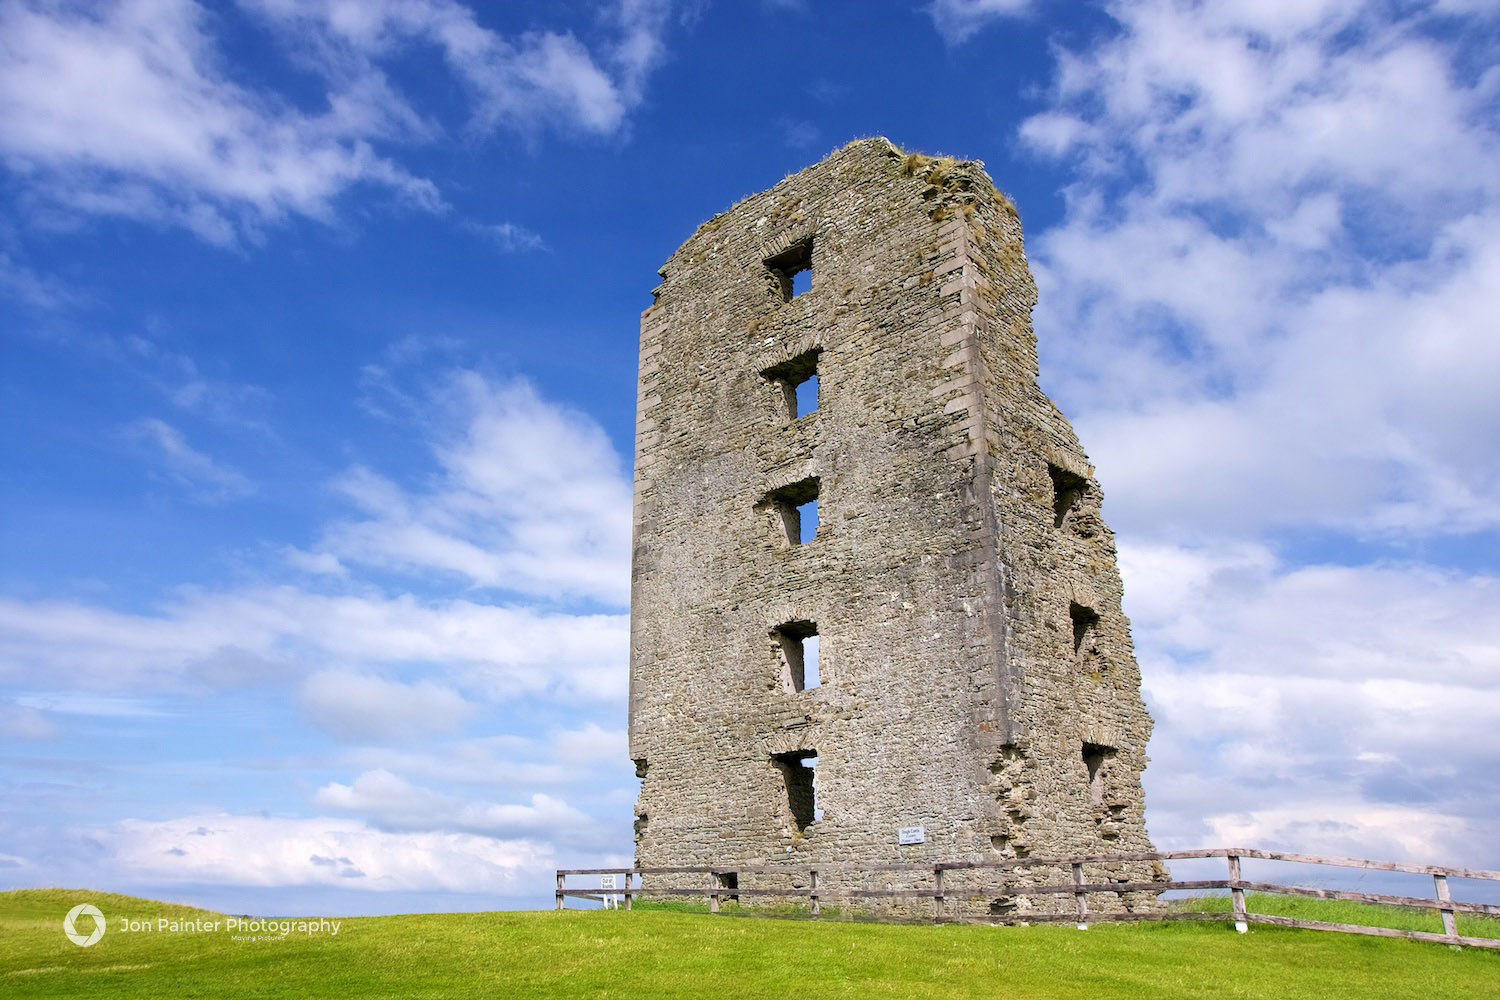 The Old Tower, Lahinch, Ireland